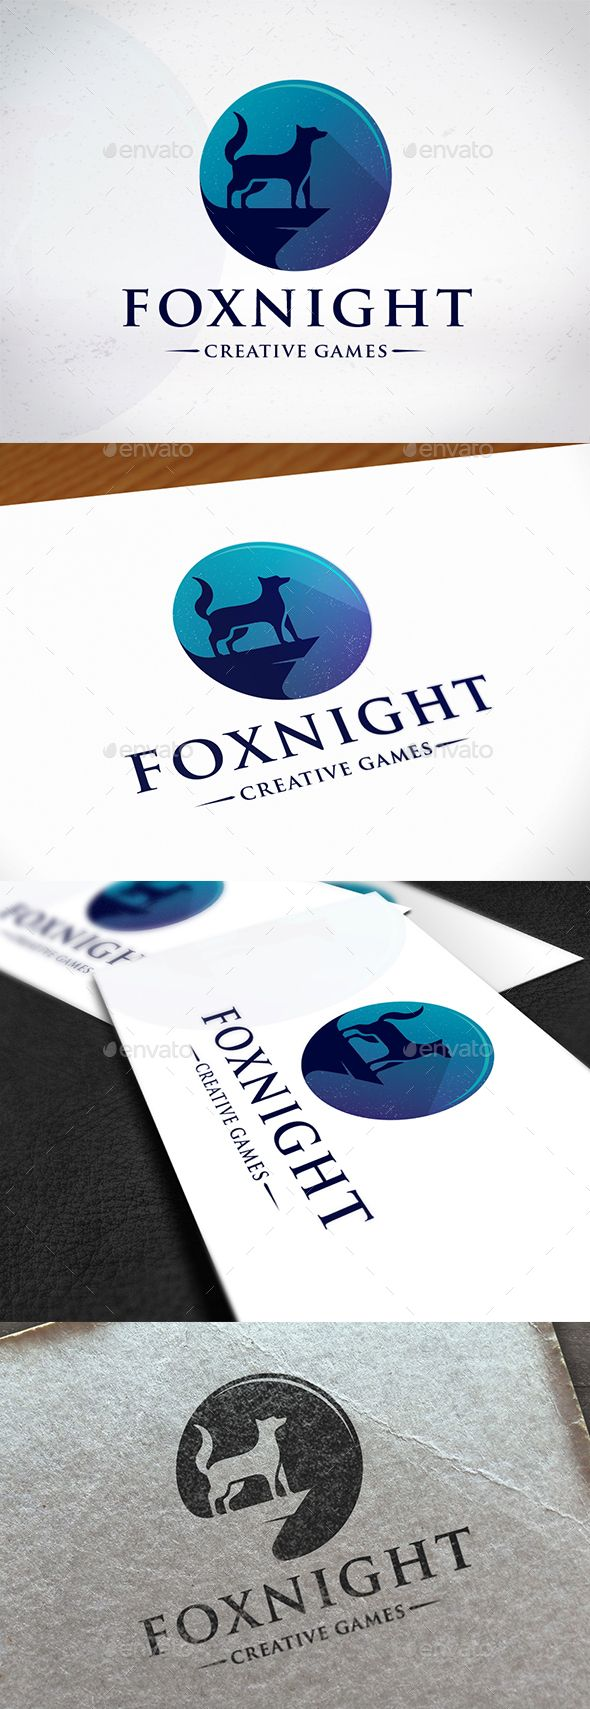 Fox Night Creative Logo Template PSD, Vector EPS, AI